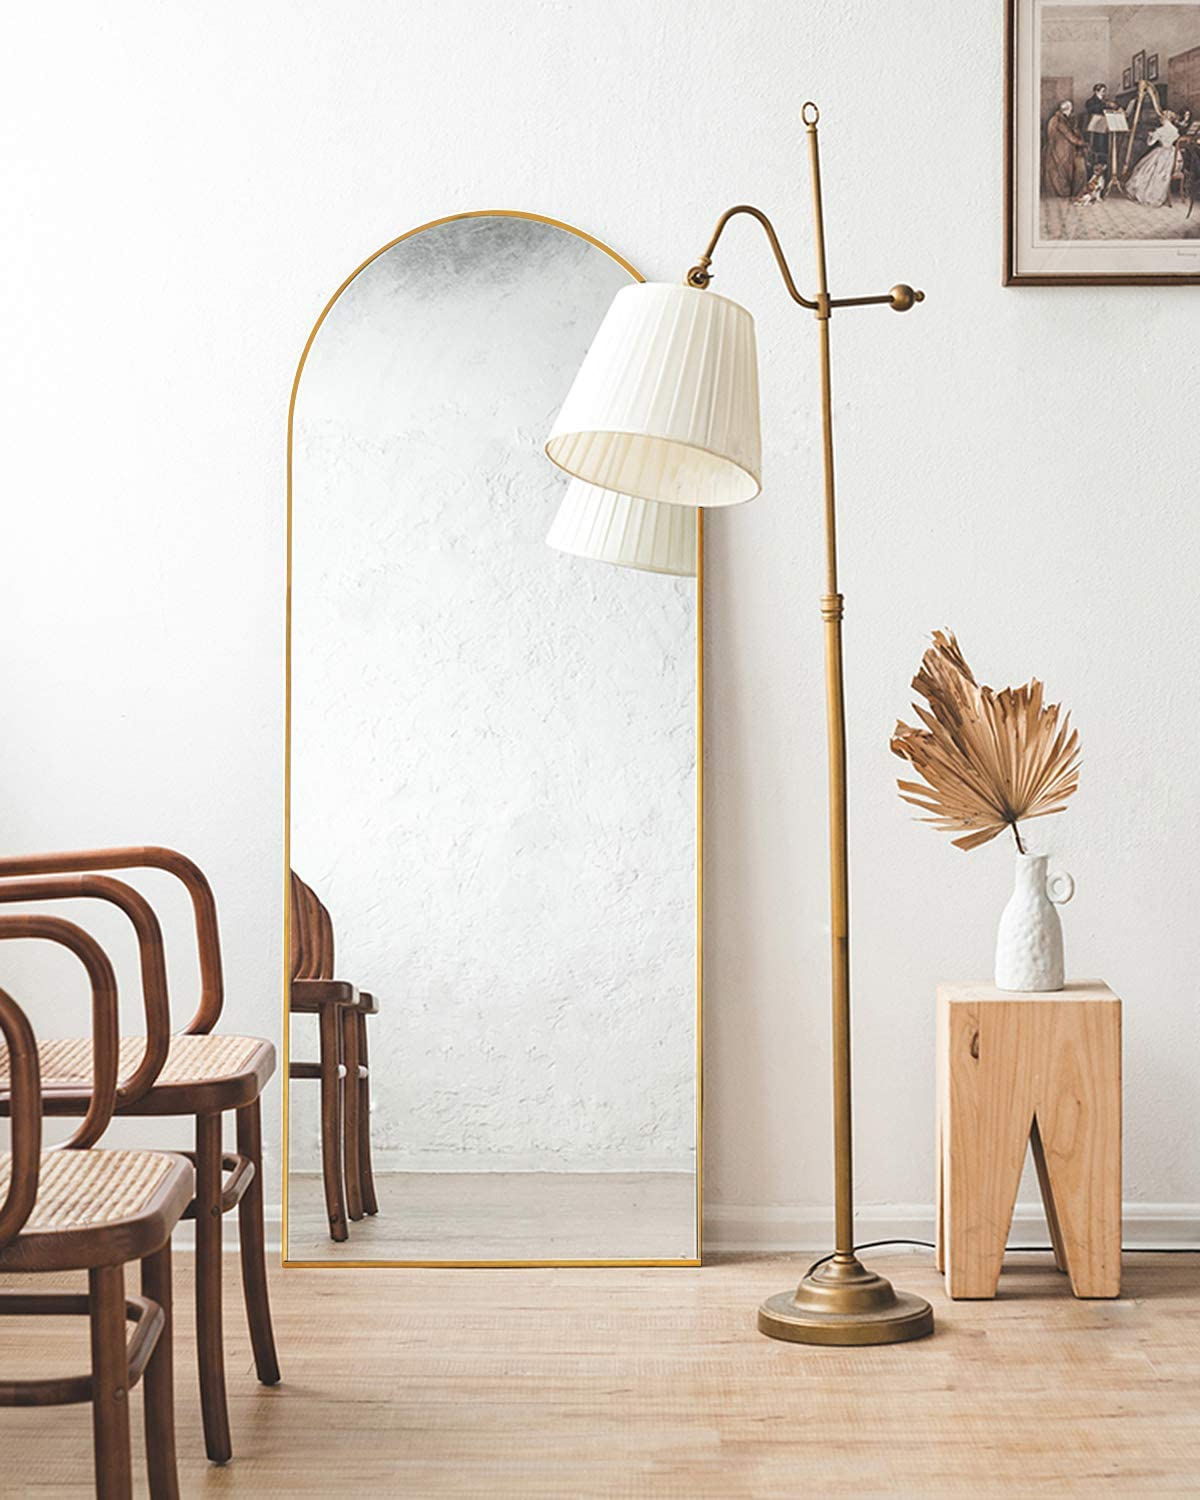 TinyTimes 65''x22'' Arched Full Length Mirror, Floor Mirror with Stand, Full Body Mirror, Wall Mirror, Modern & Contemporary Full Length Mirror for new home wishlist